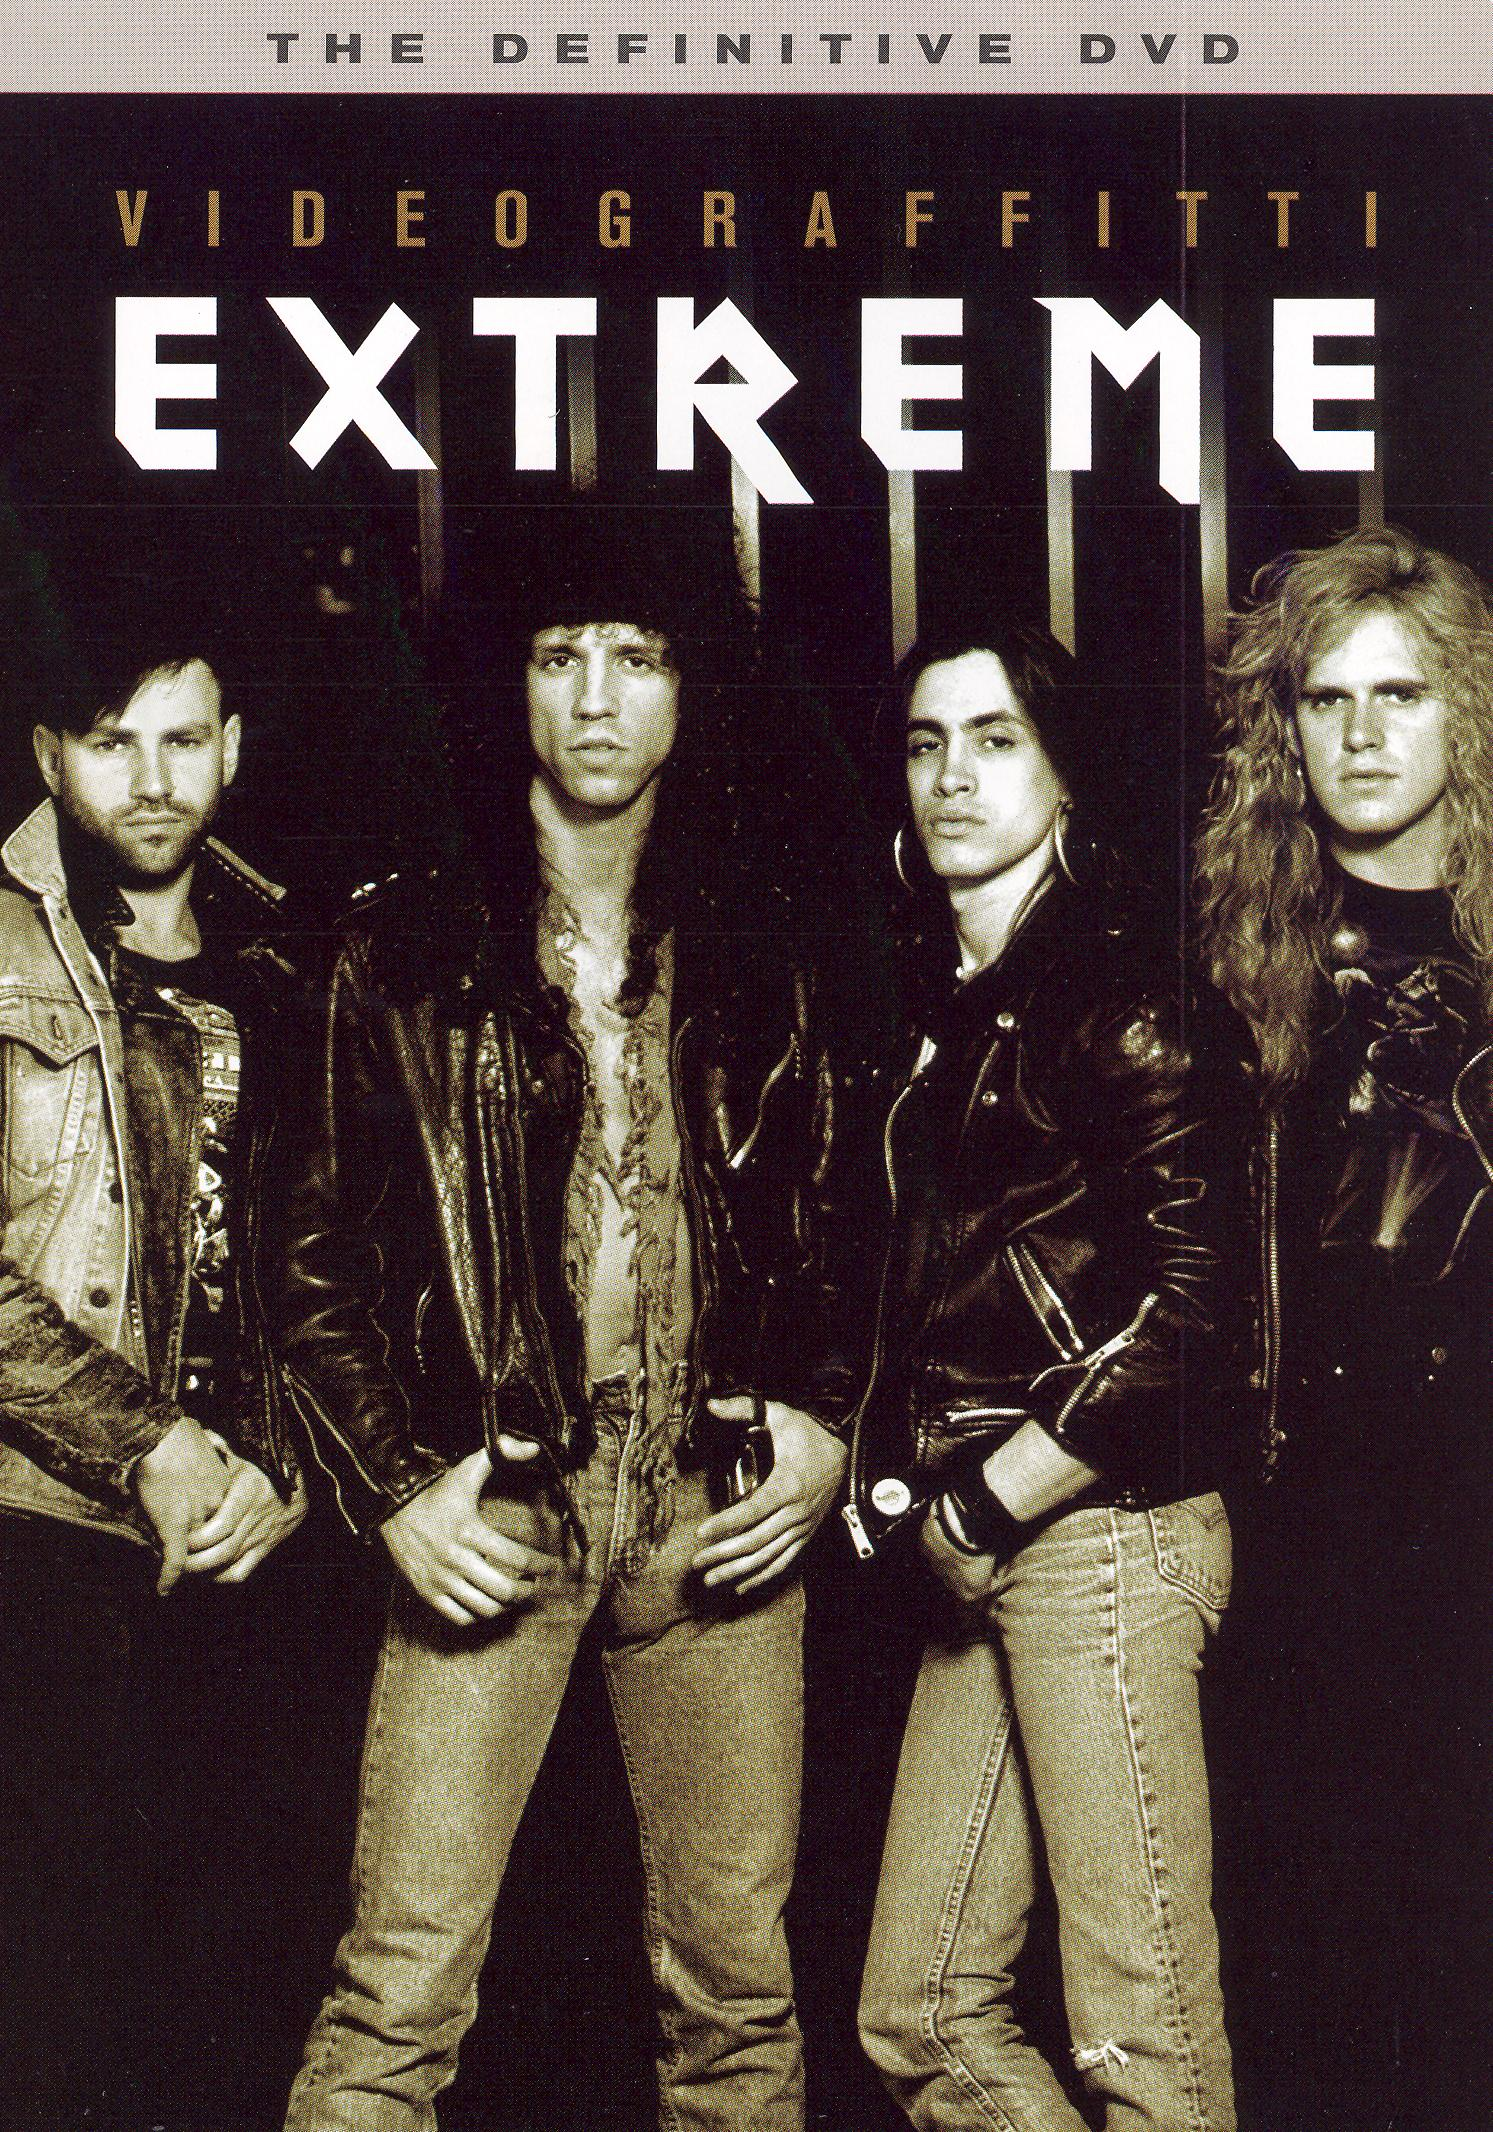 Extreme: Videograffiti - The Definitive